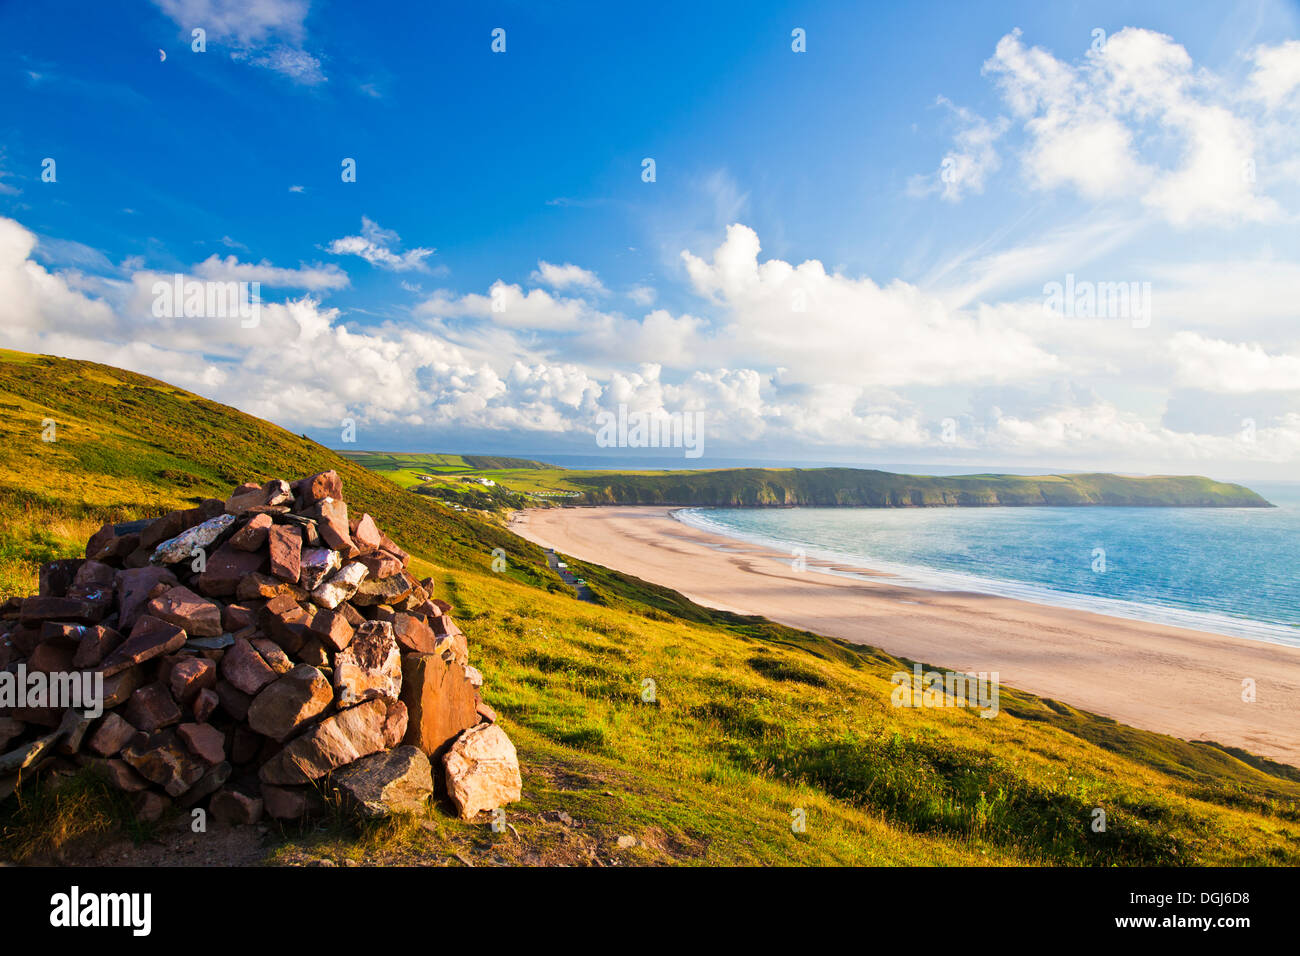 Evening light falls on the cairn on top of Potters Hill overlooking Putsborough Sands and Baggy Point. - Stock Image